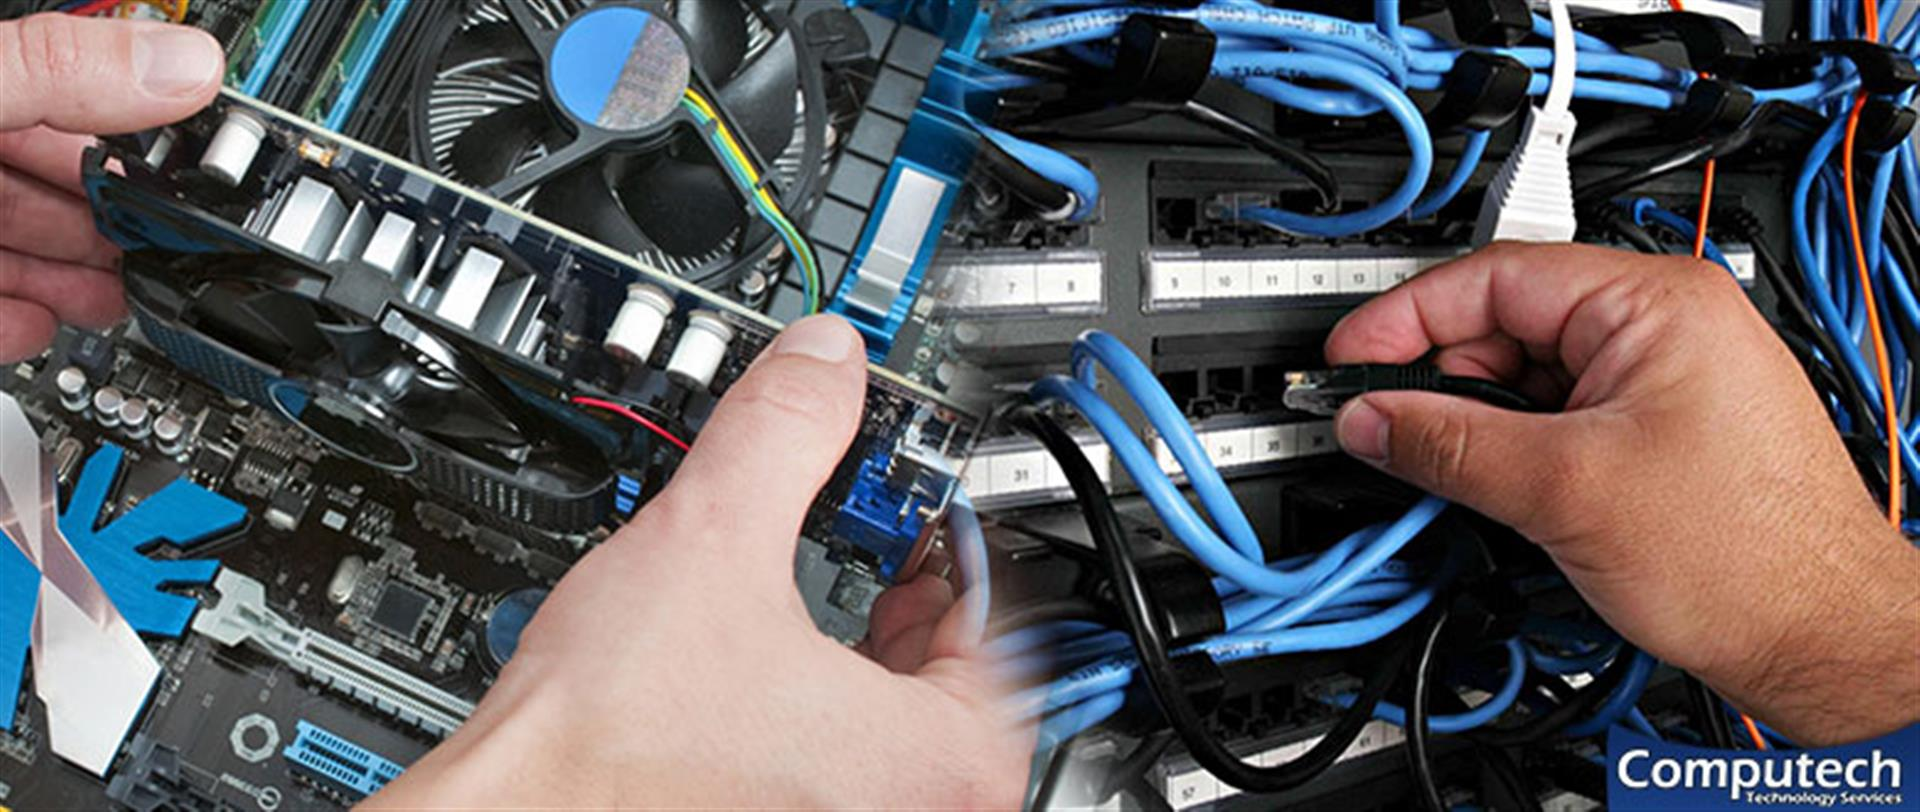 Nolensville Tennessee Onsite Computer PC & Printer Repair, Networks, Voice & Data Cabling Solutions